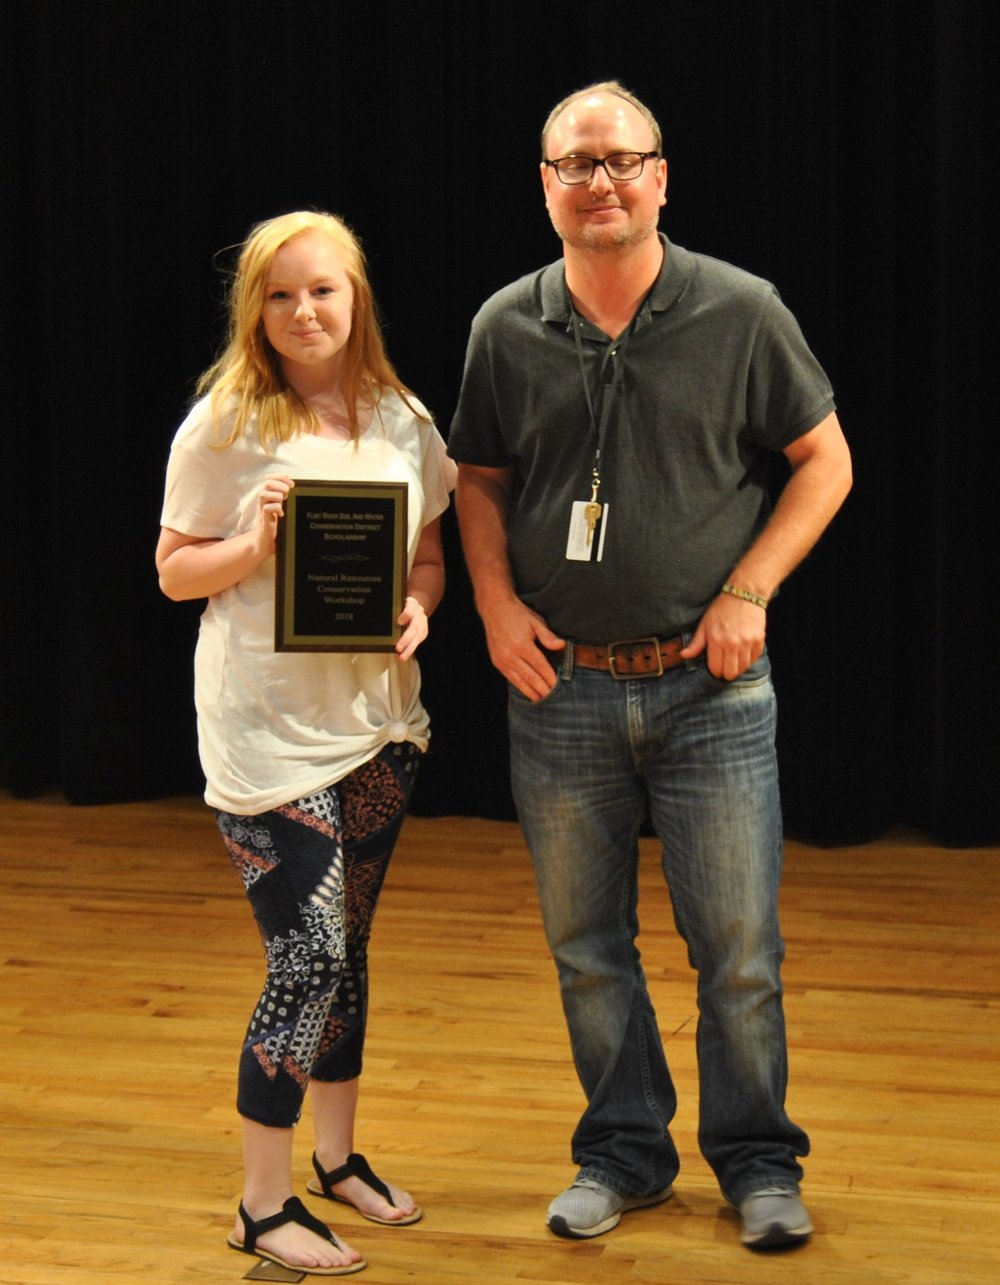 Victoria Edmunds, a rising 12th-grade student at Rockdale County High School, was the recipient of the $500 Flint River Soil and Water Conservation District Scholarship.  Victoria's registration to NRCW was sponsored by the Rockdale County Soil and Water Conservation District. Pictured with Victoria is NRCW Director Luke Crosson.